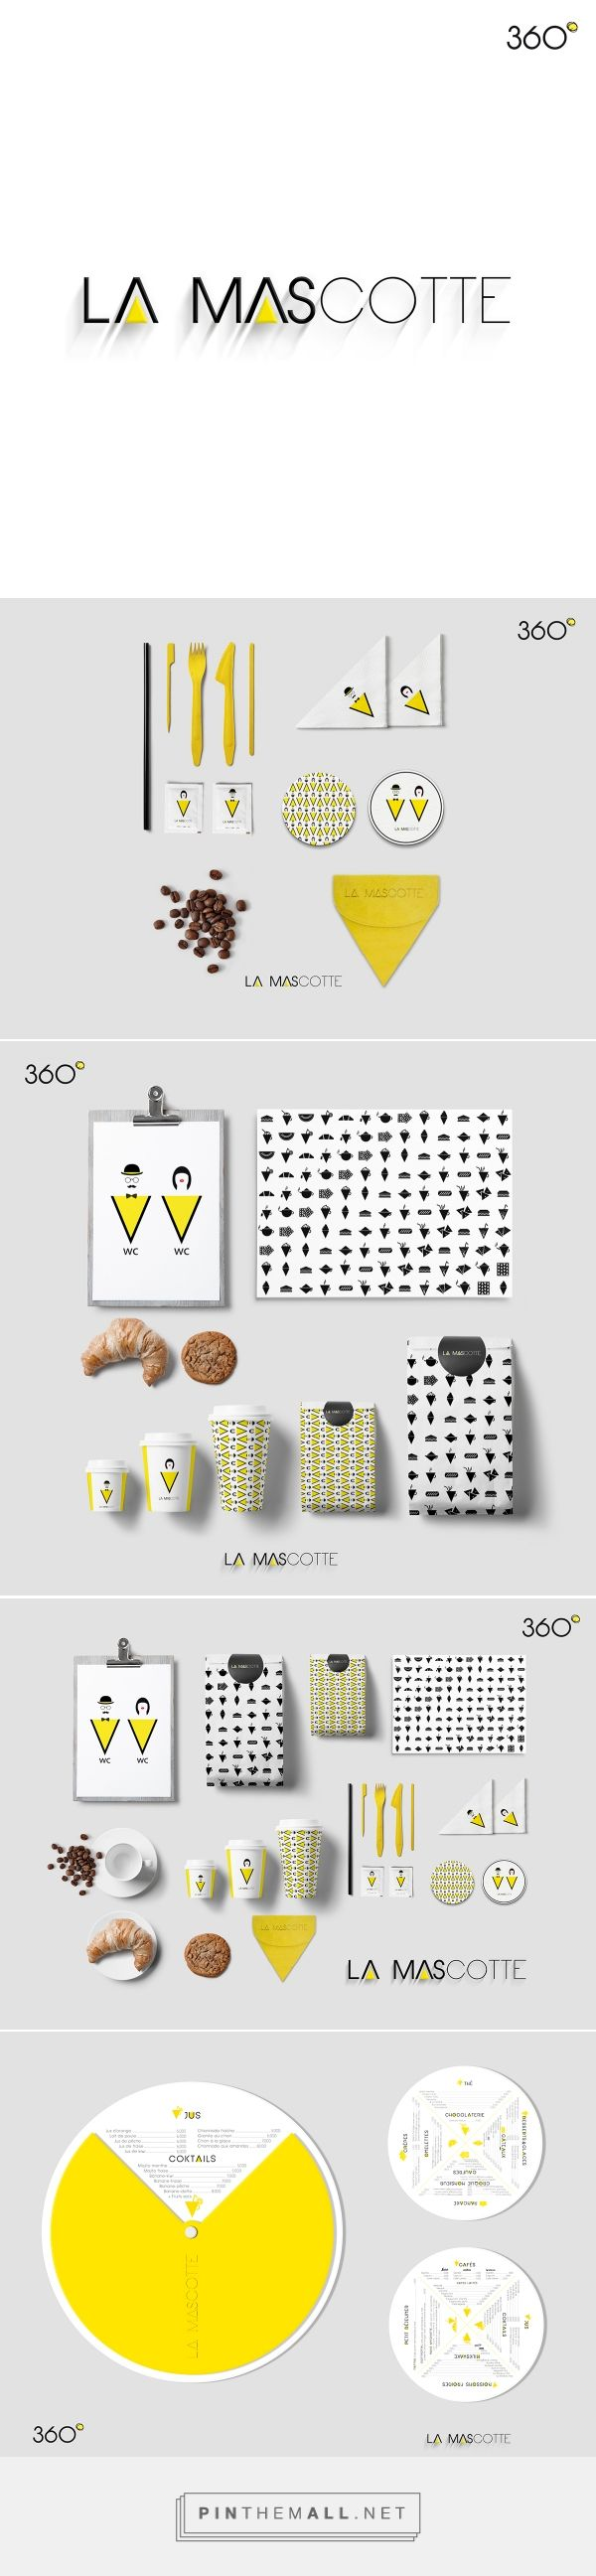 La mascotte identity on Behance | Fivestar Branding – Design and Branding Agency & Inspiration Gallery